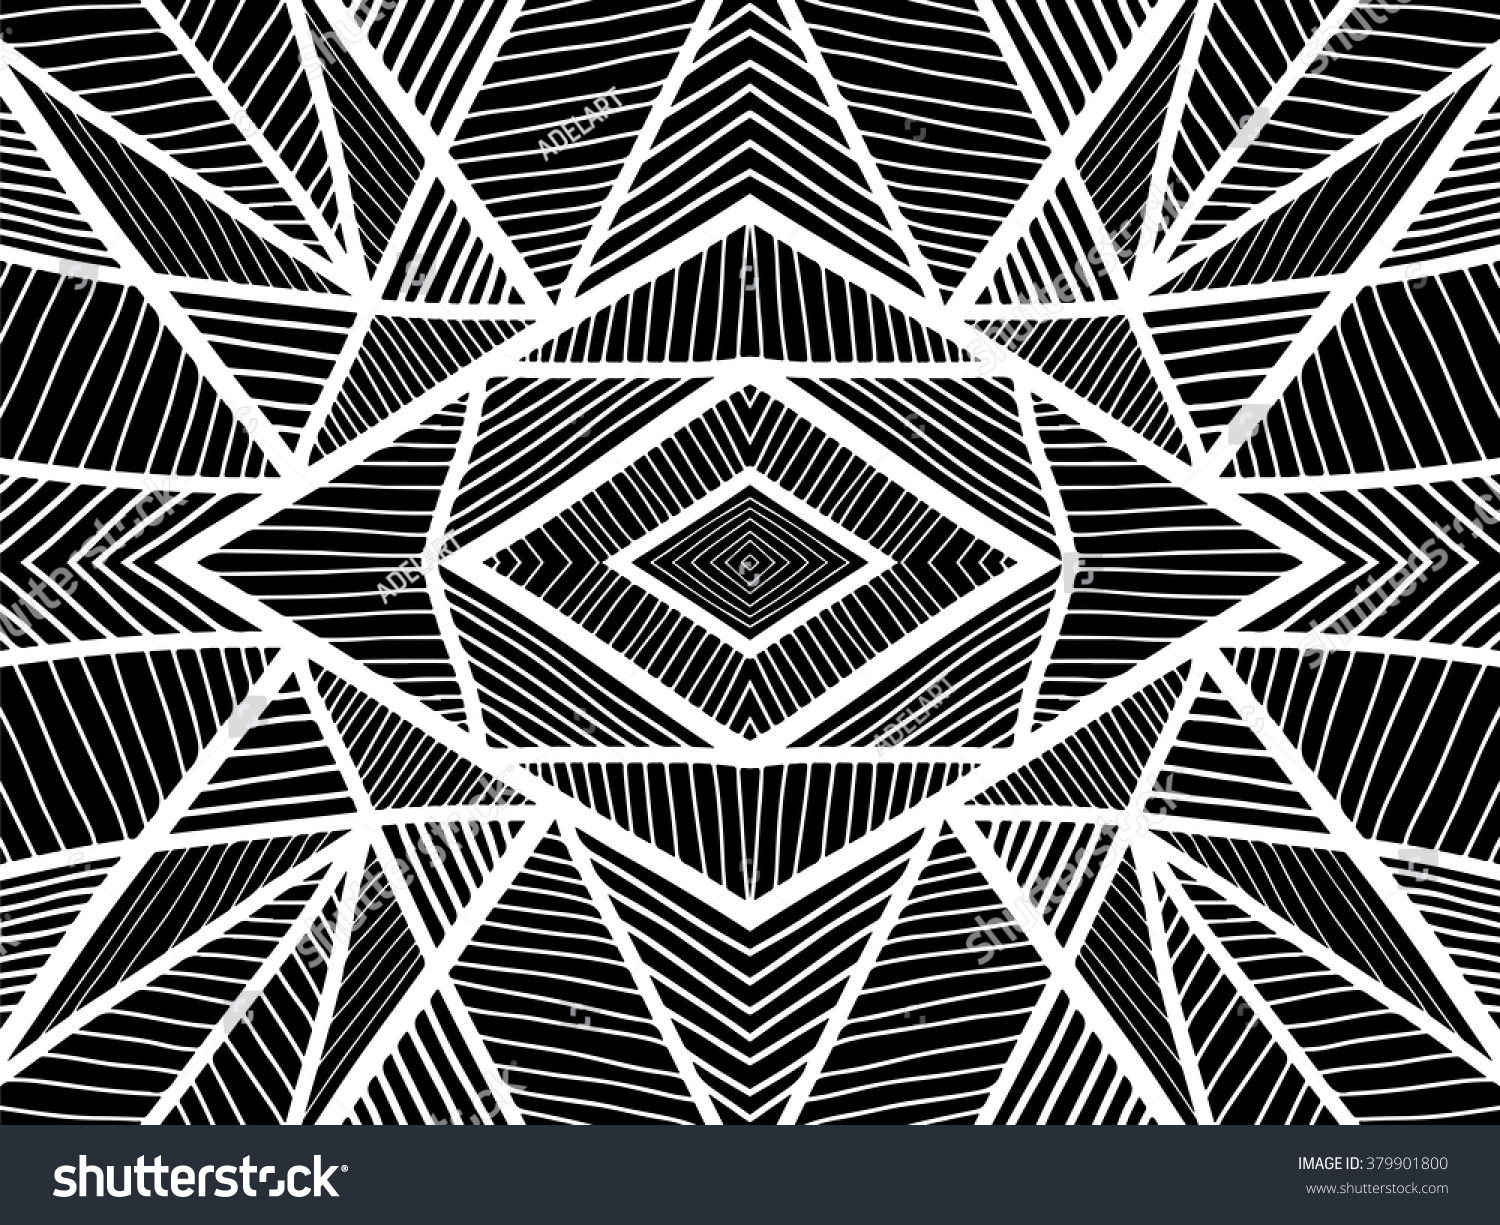 Stock Illustration Volleyball Tribal Abstract Vector: Background Geometric Abstract. Simple Tribal Ornament